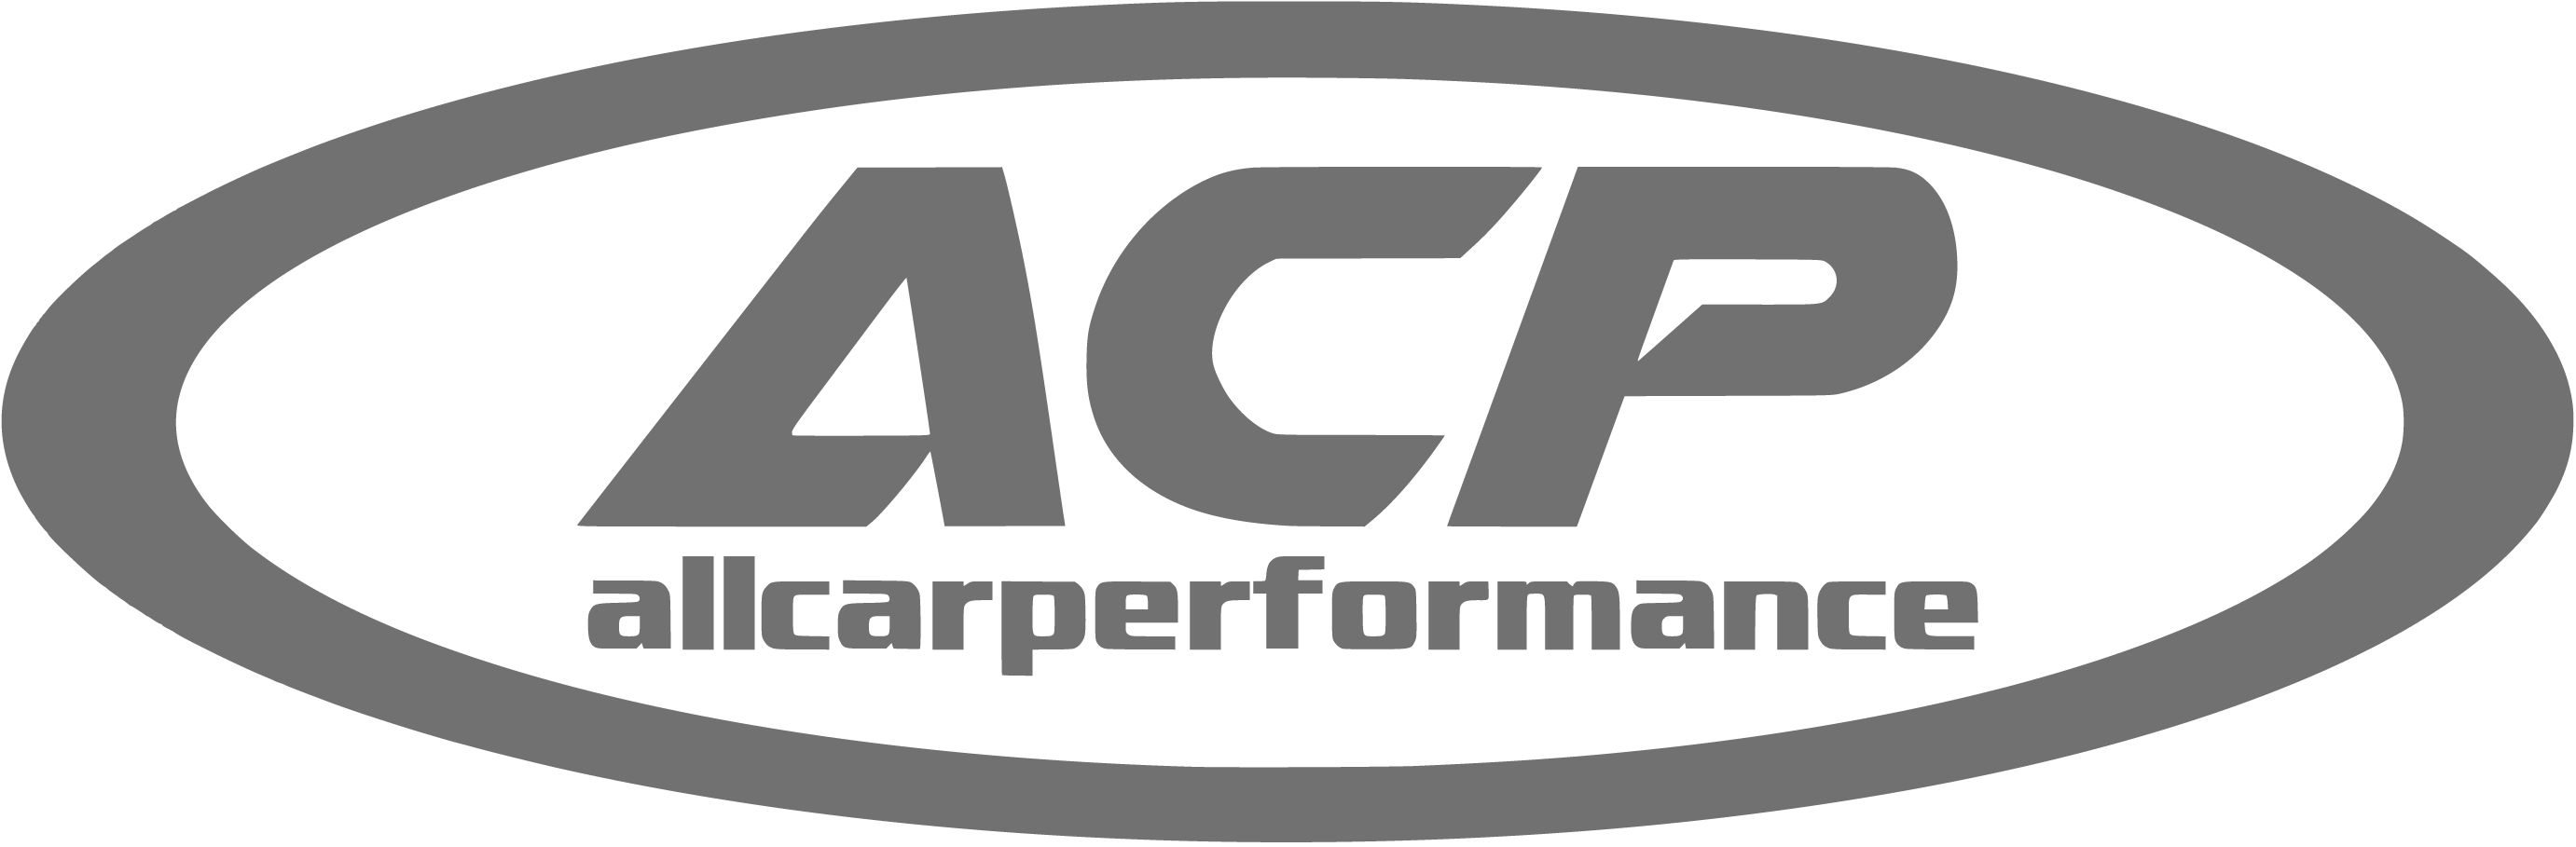 Allcarperformance